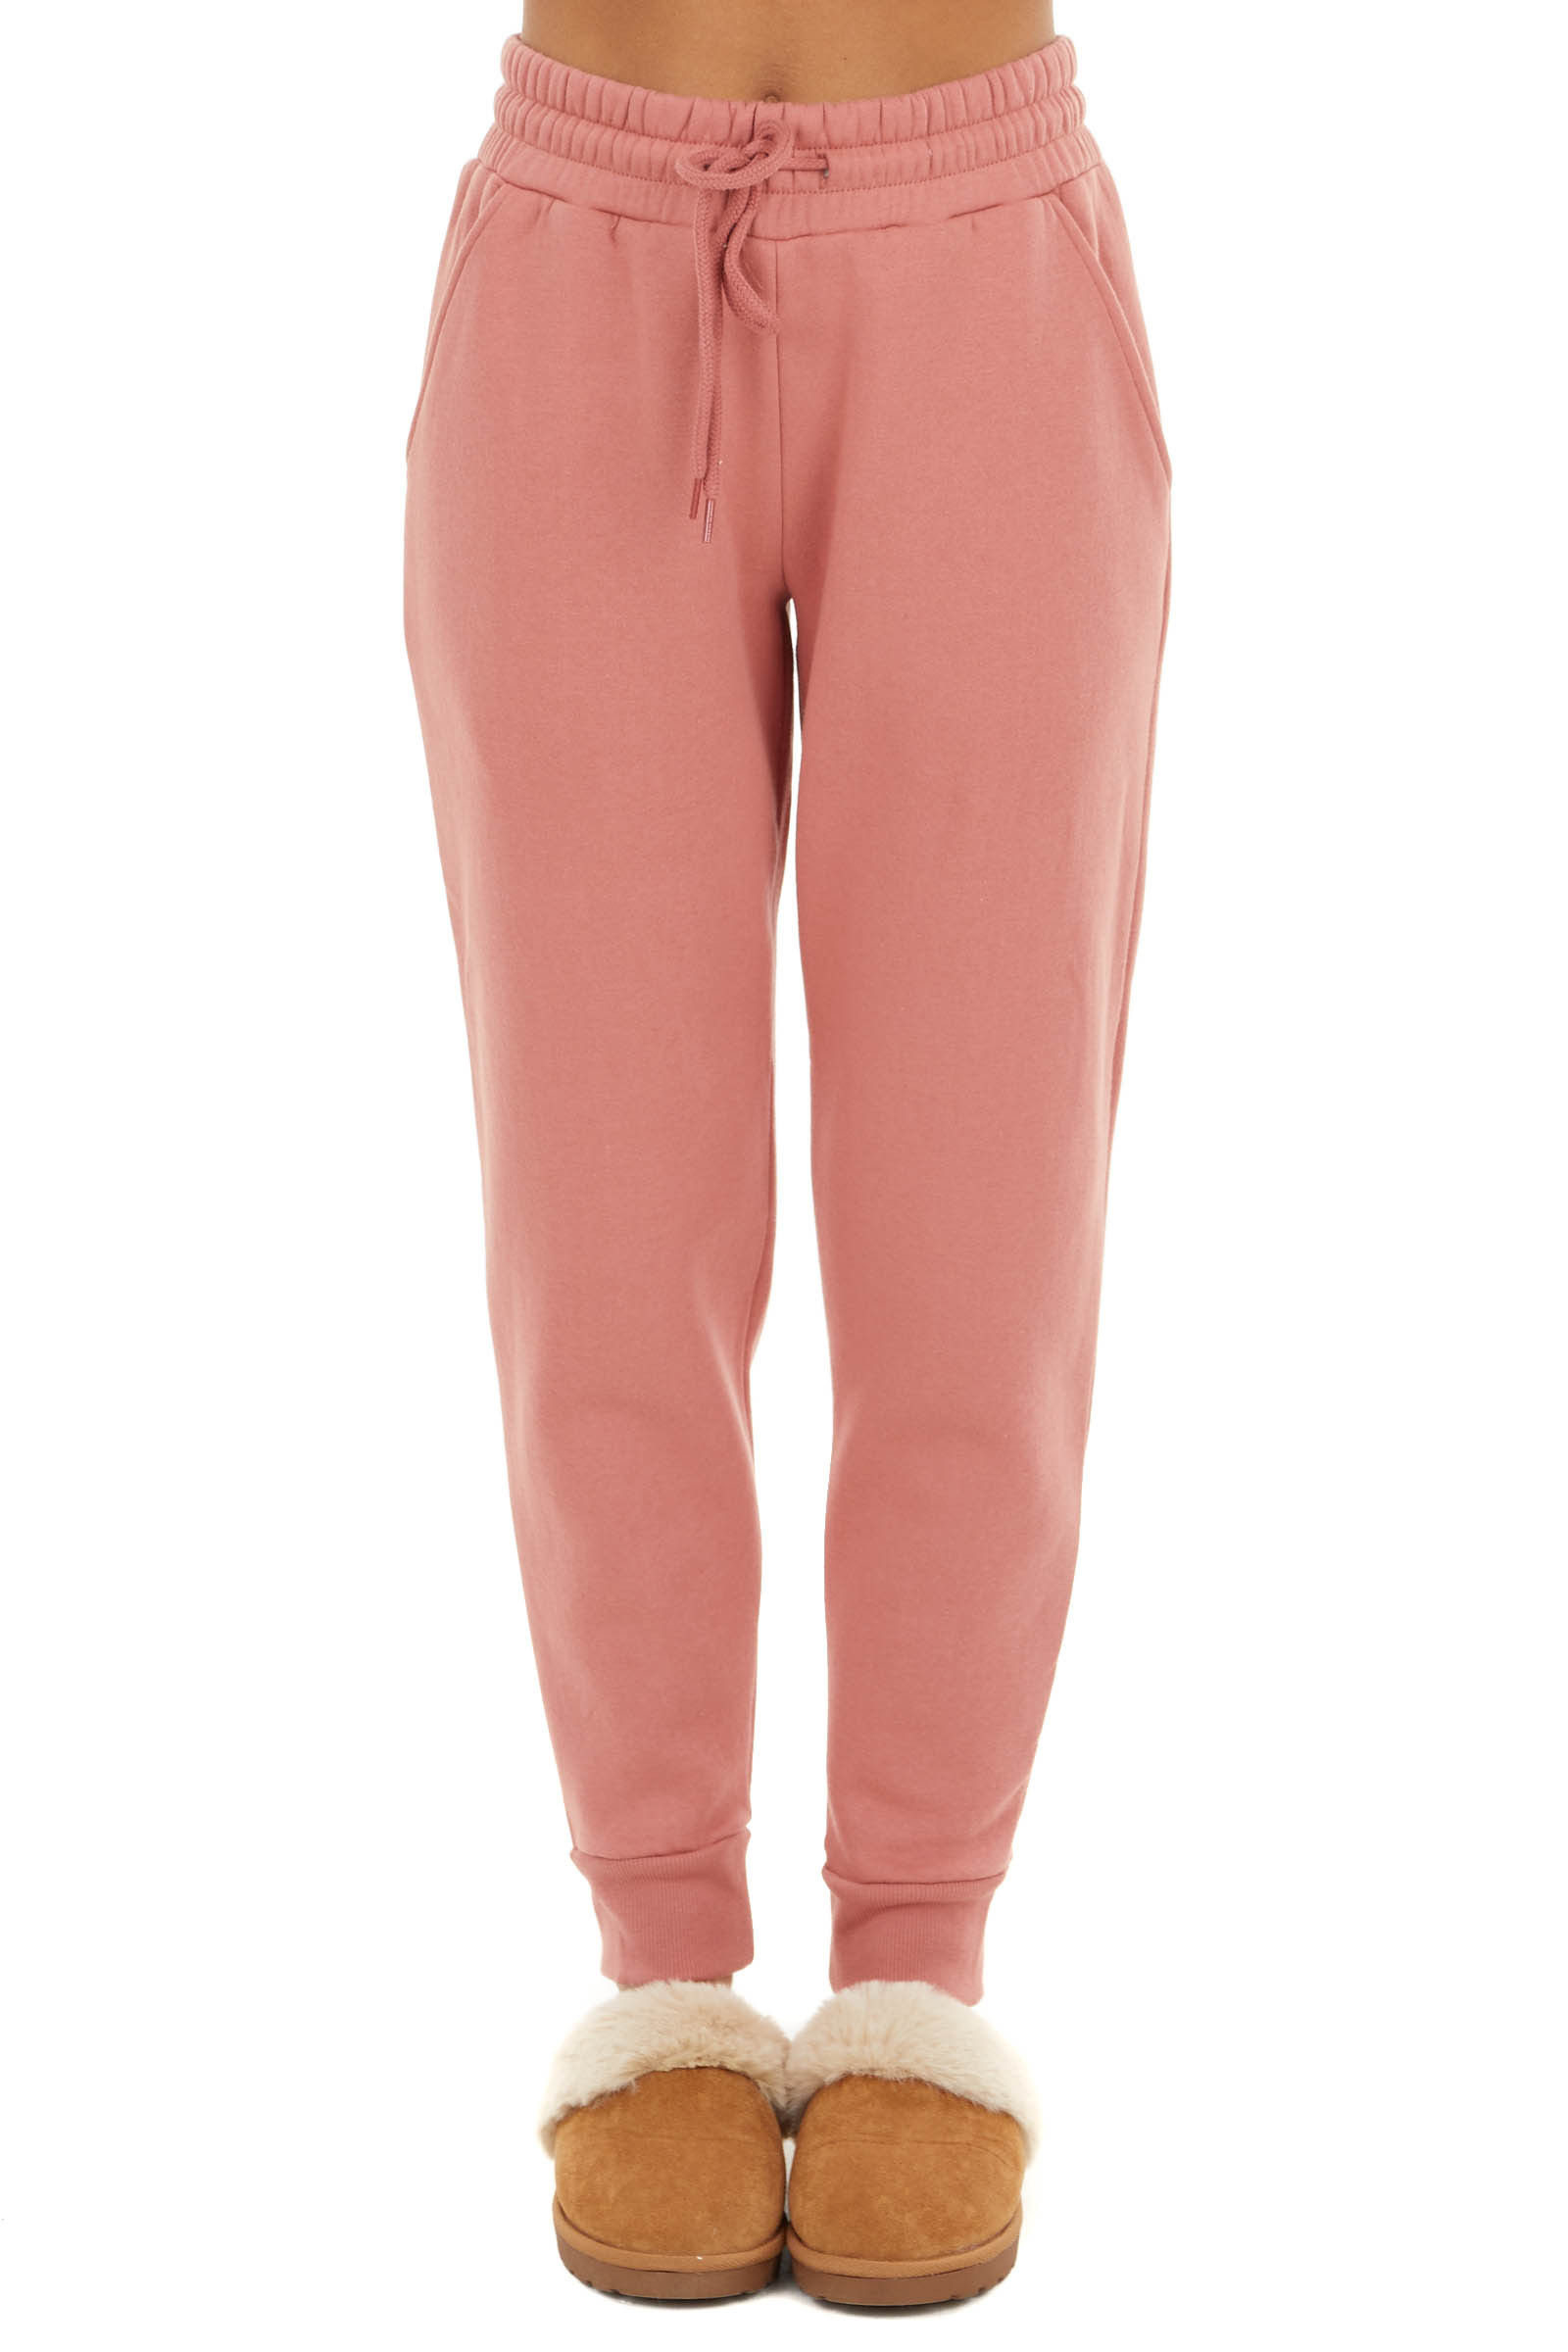 Coral Thick Stretchy Knit Joggers with Drawstring Waist